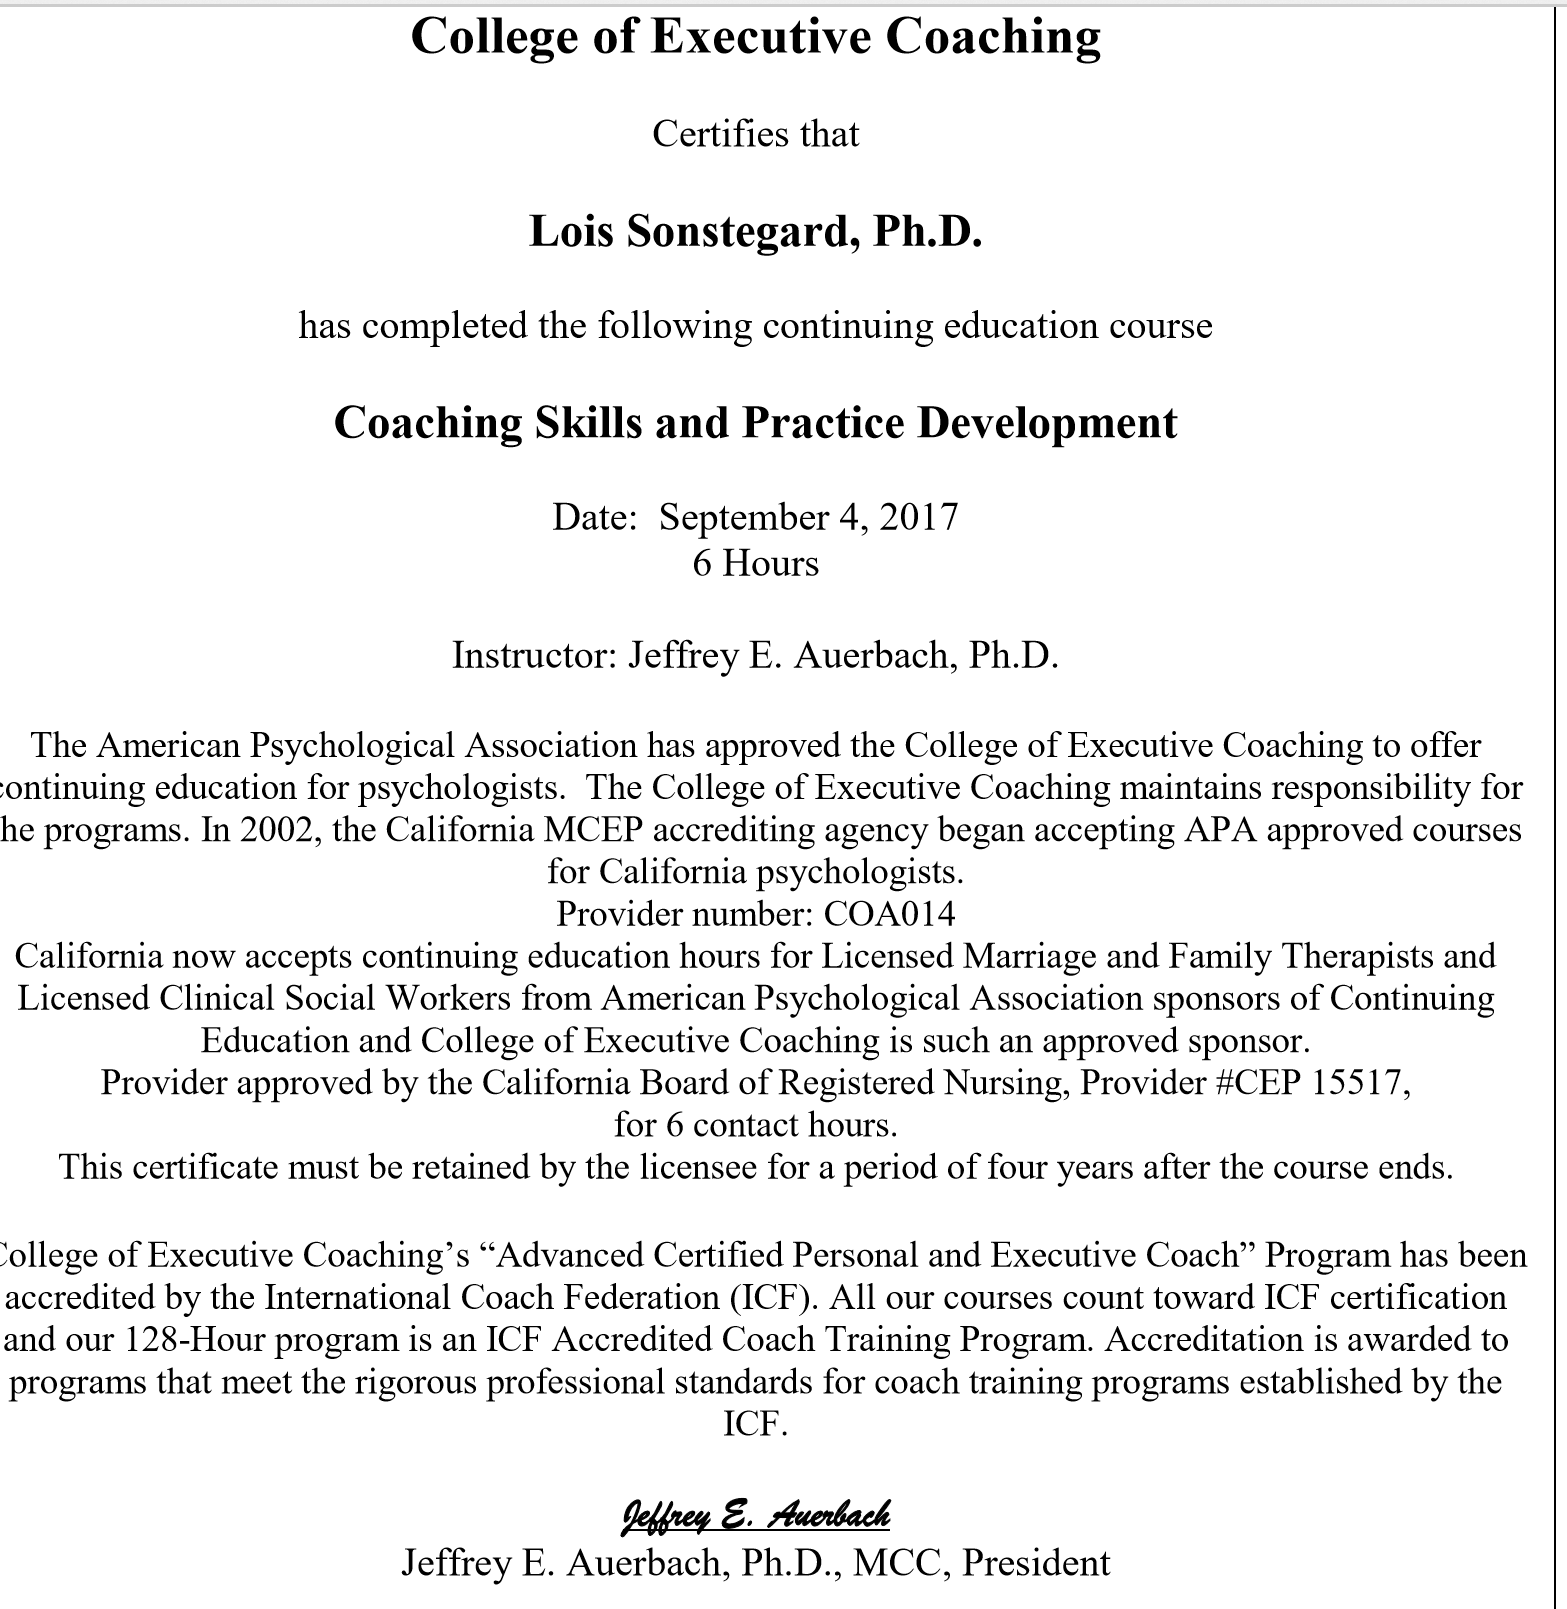 College of Executive Coaches Certification